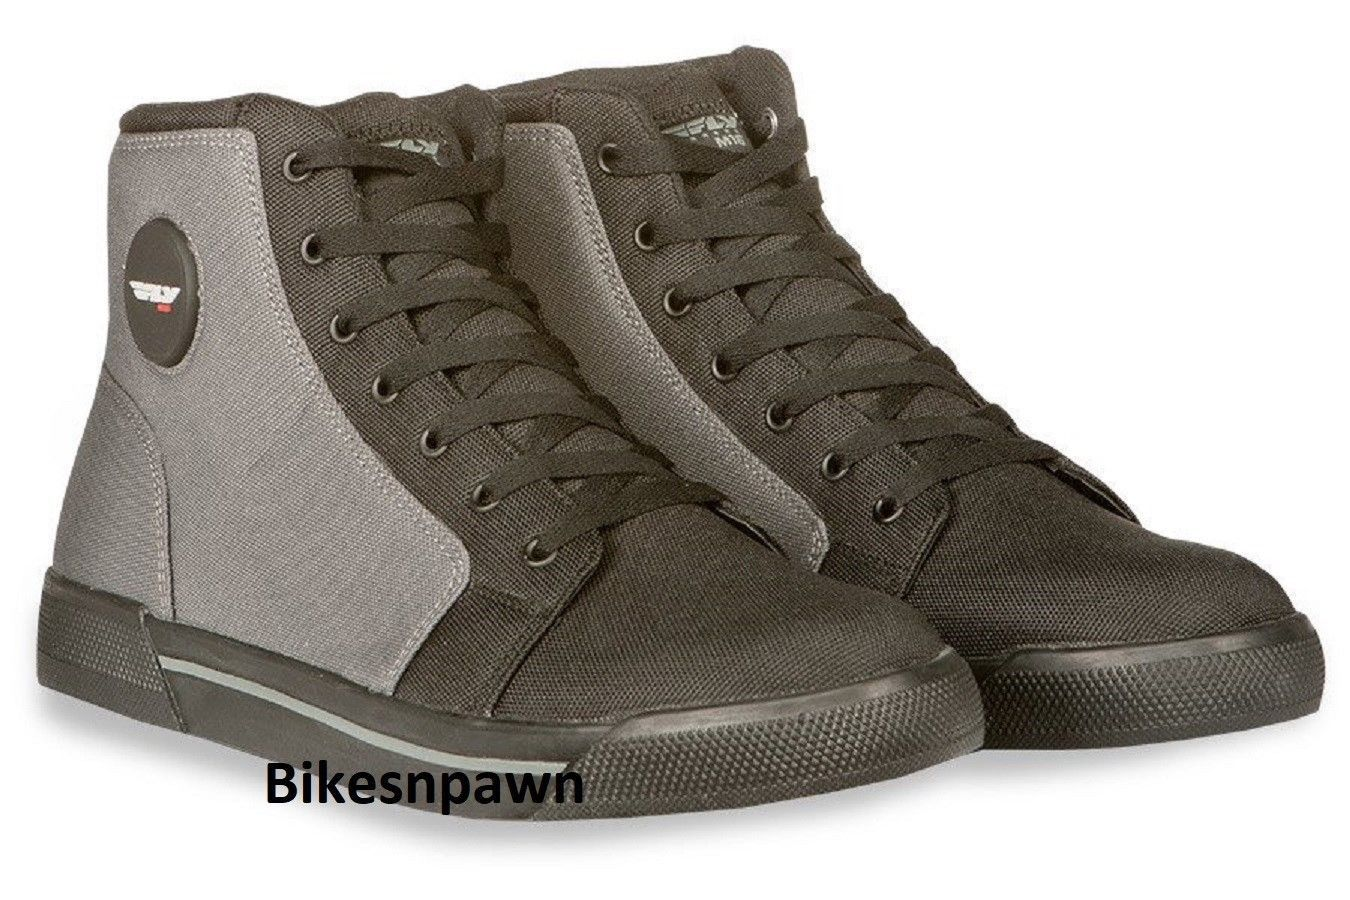 New Size 9 Mens FLY Racing M16 Canvas Motorcycle Street Riding Shoe